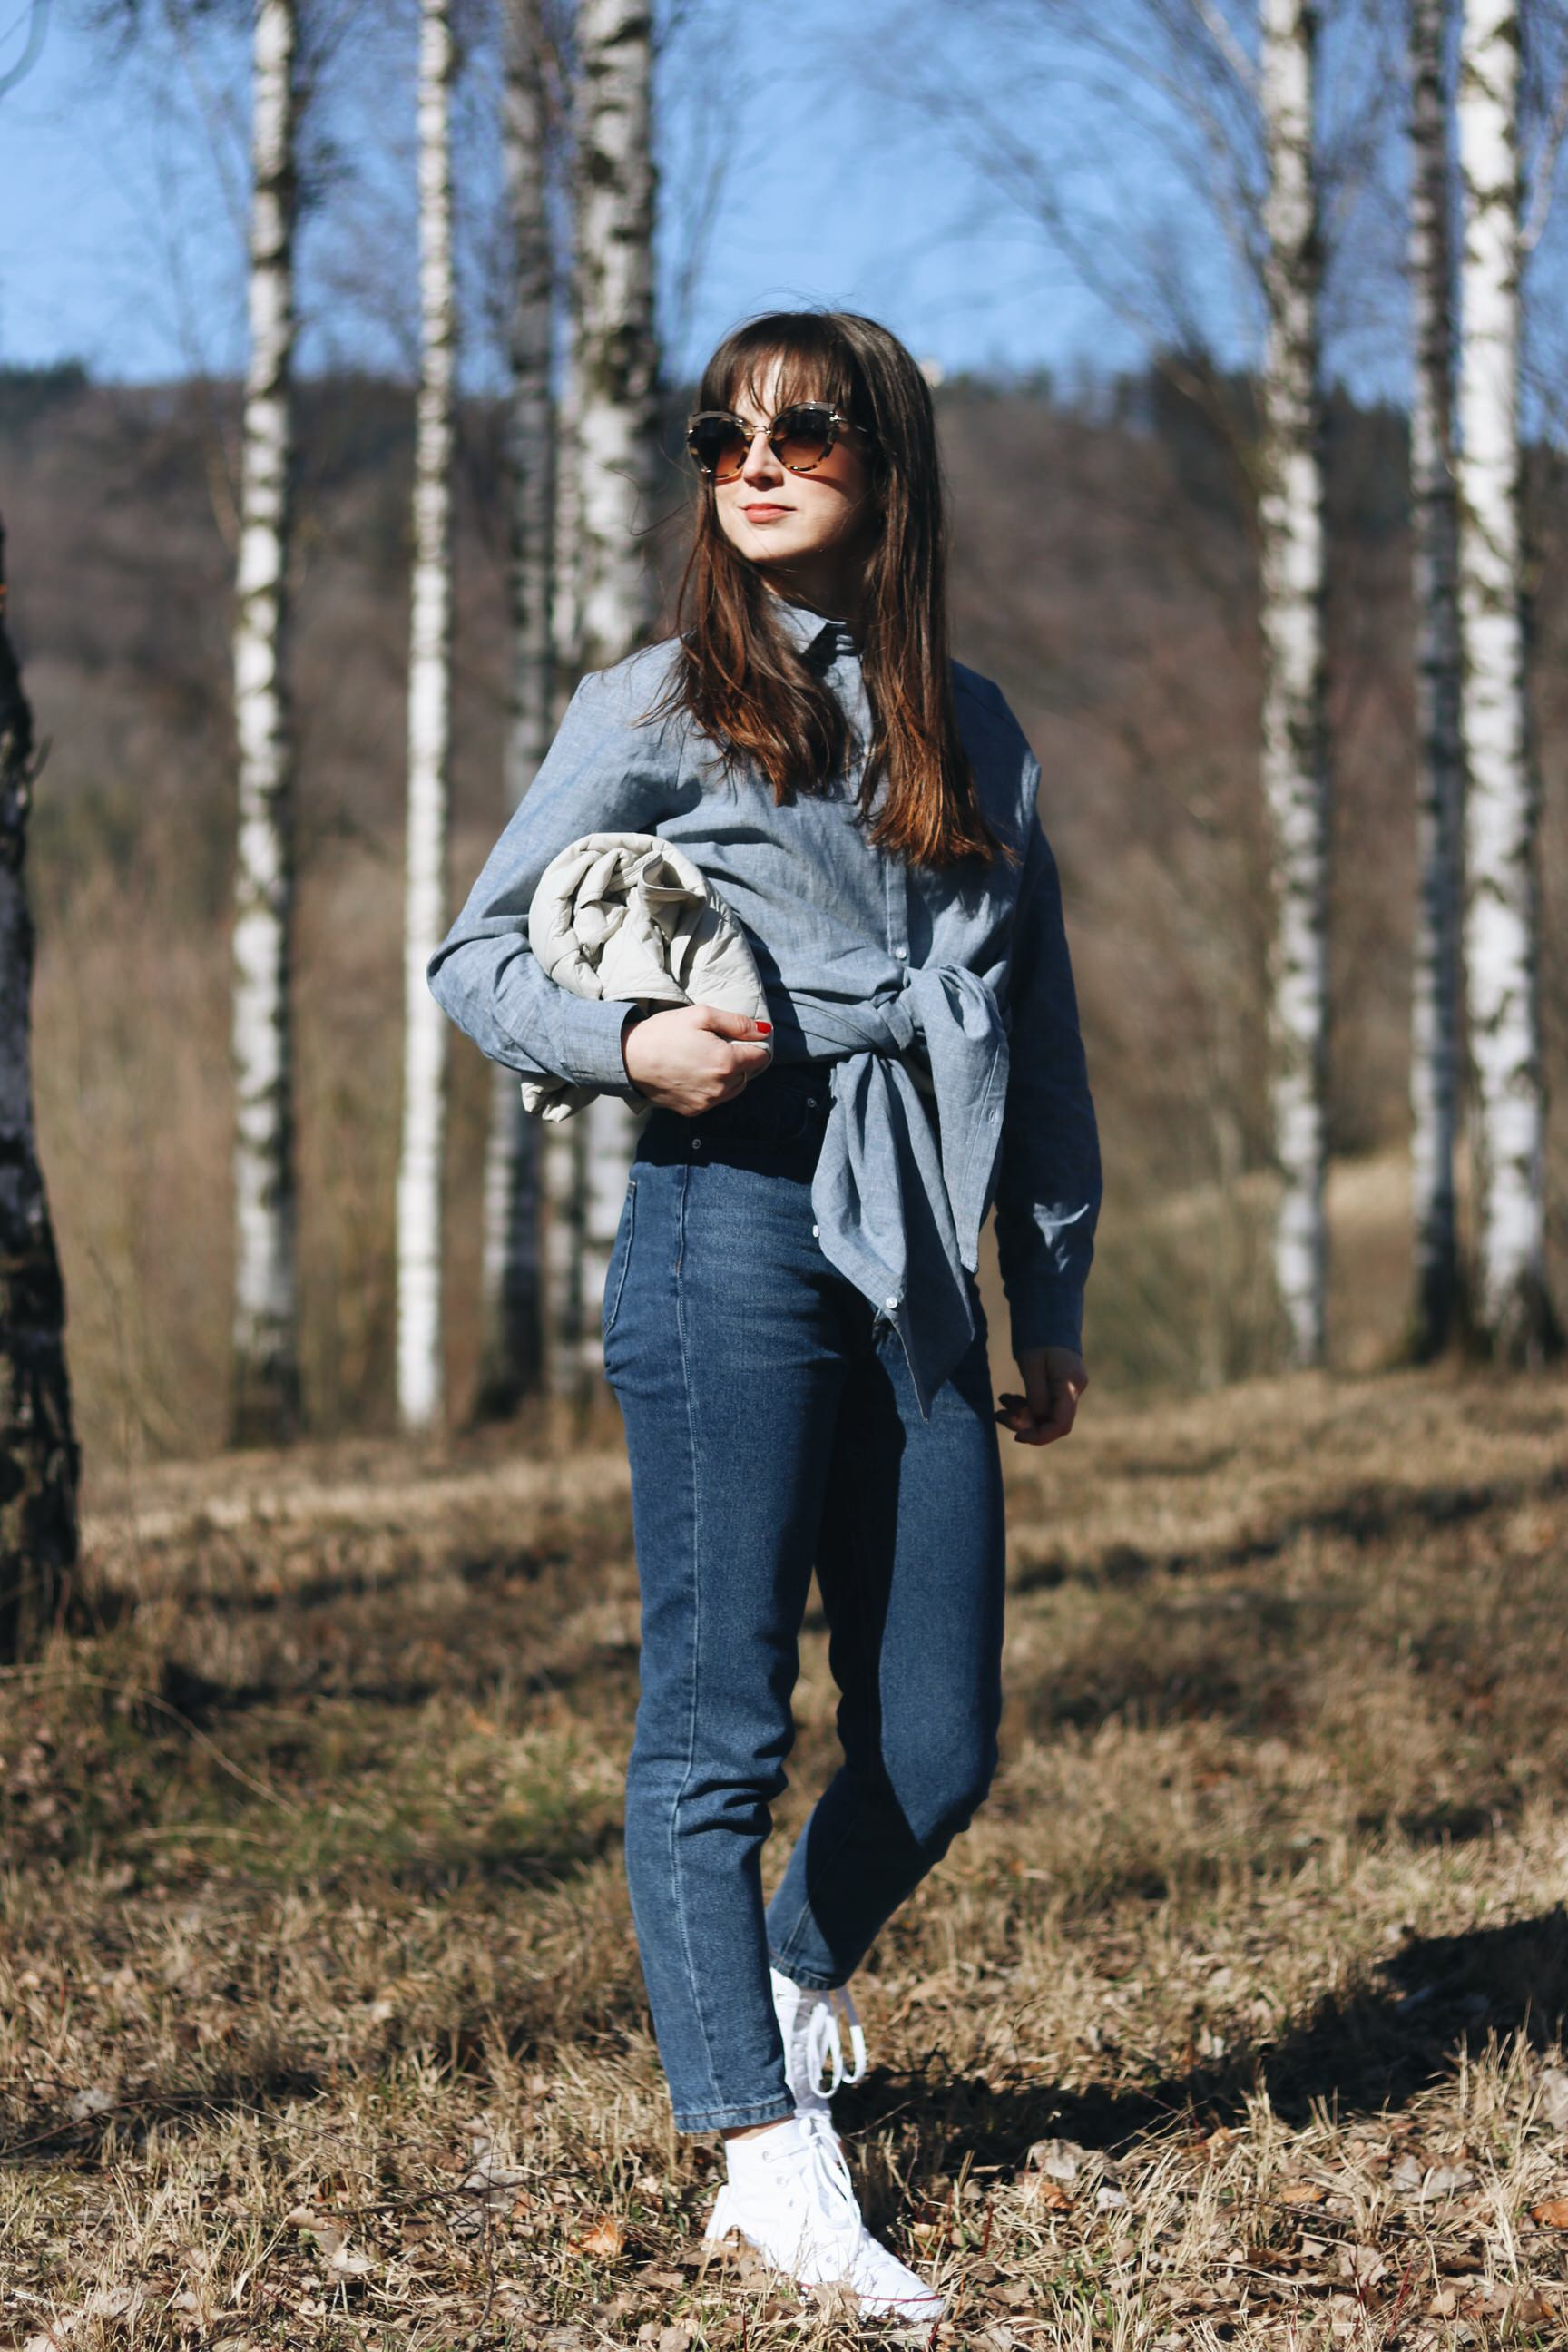 Longbluse Barbour Mom Jeans hohe weisse chucks Modebloggerin Outfit wandern Fruehling